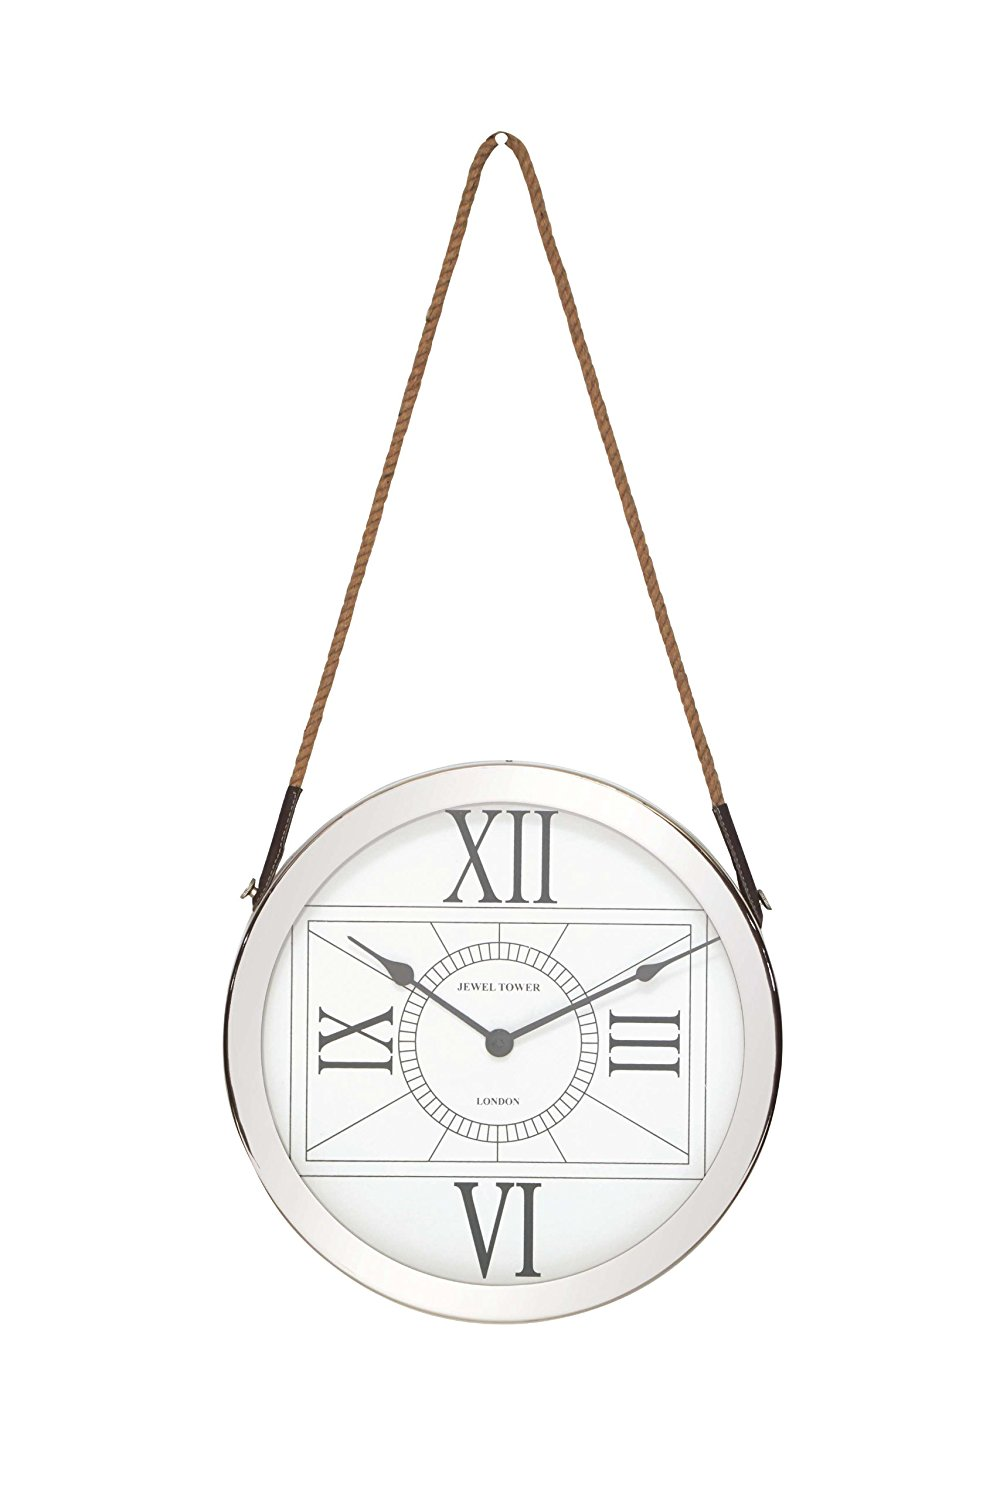 Cheap Stainless Steel Wall Clock Find Stainless Steel Wall Clock